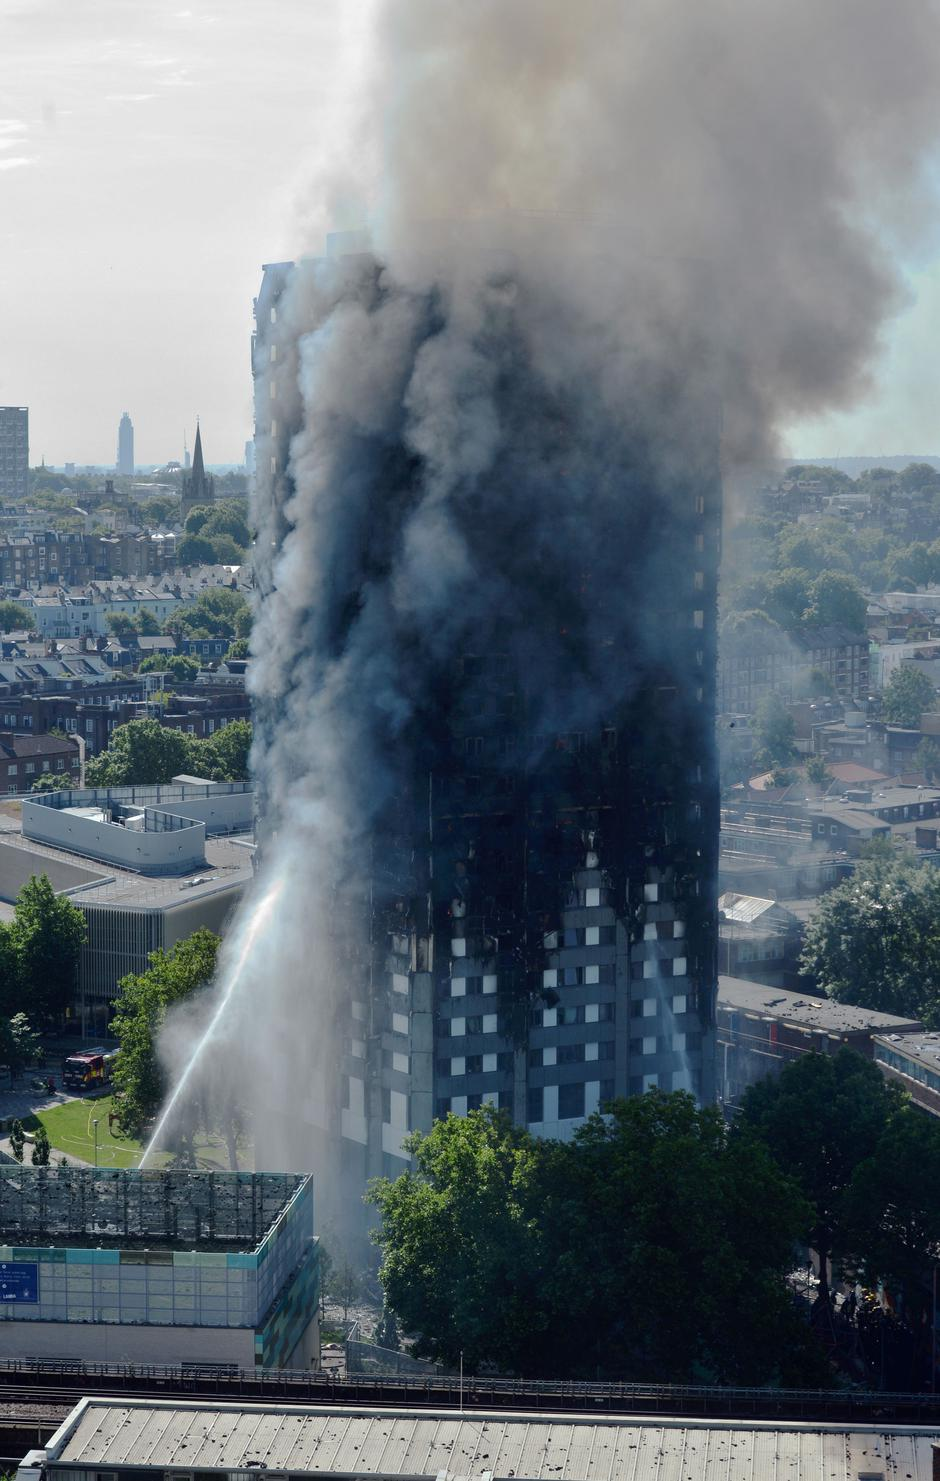 Tower block fire in London | Autor: Victoria Jones/Press Association/PIXSELL